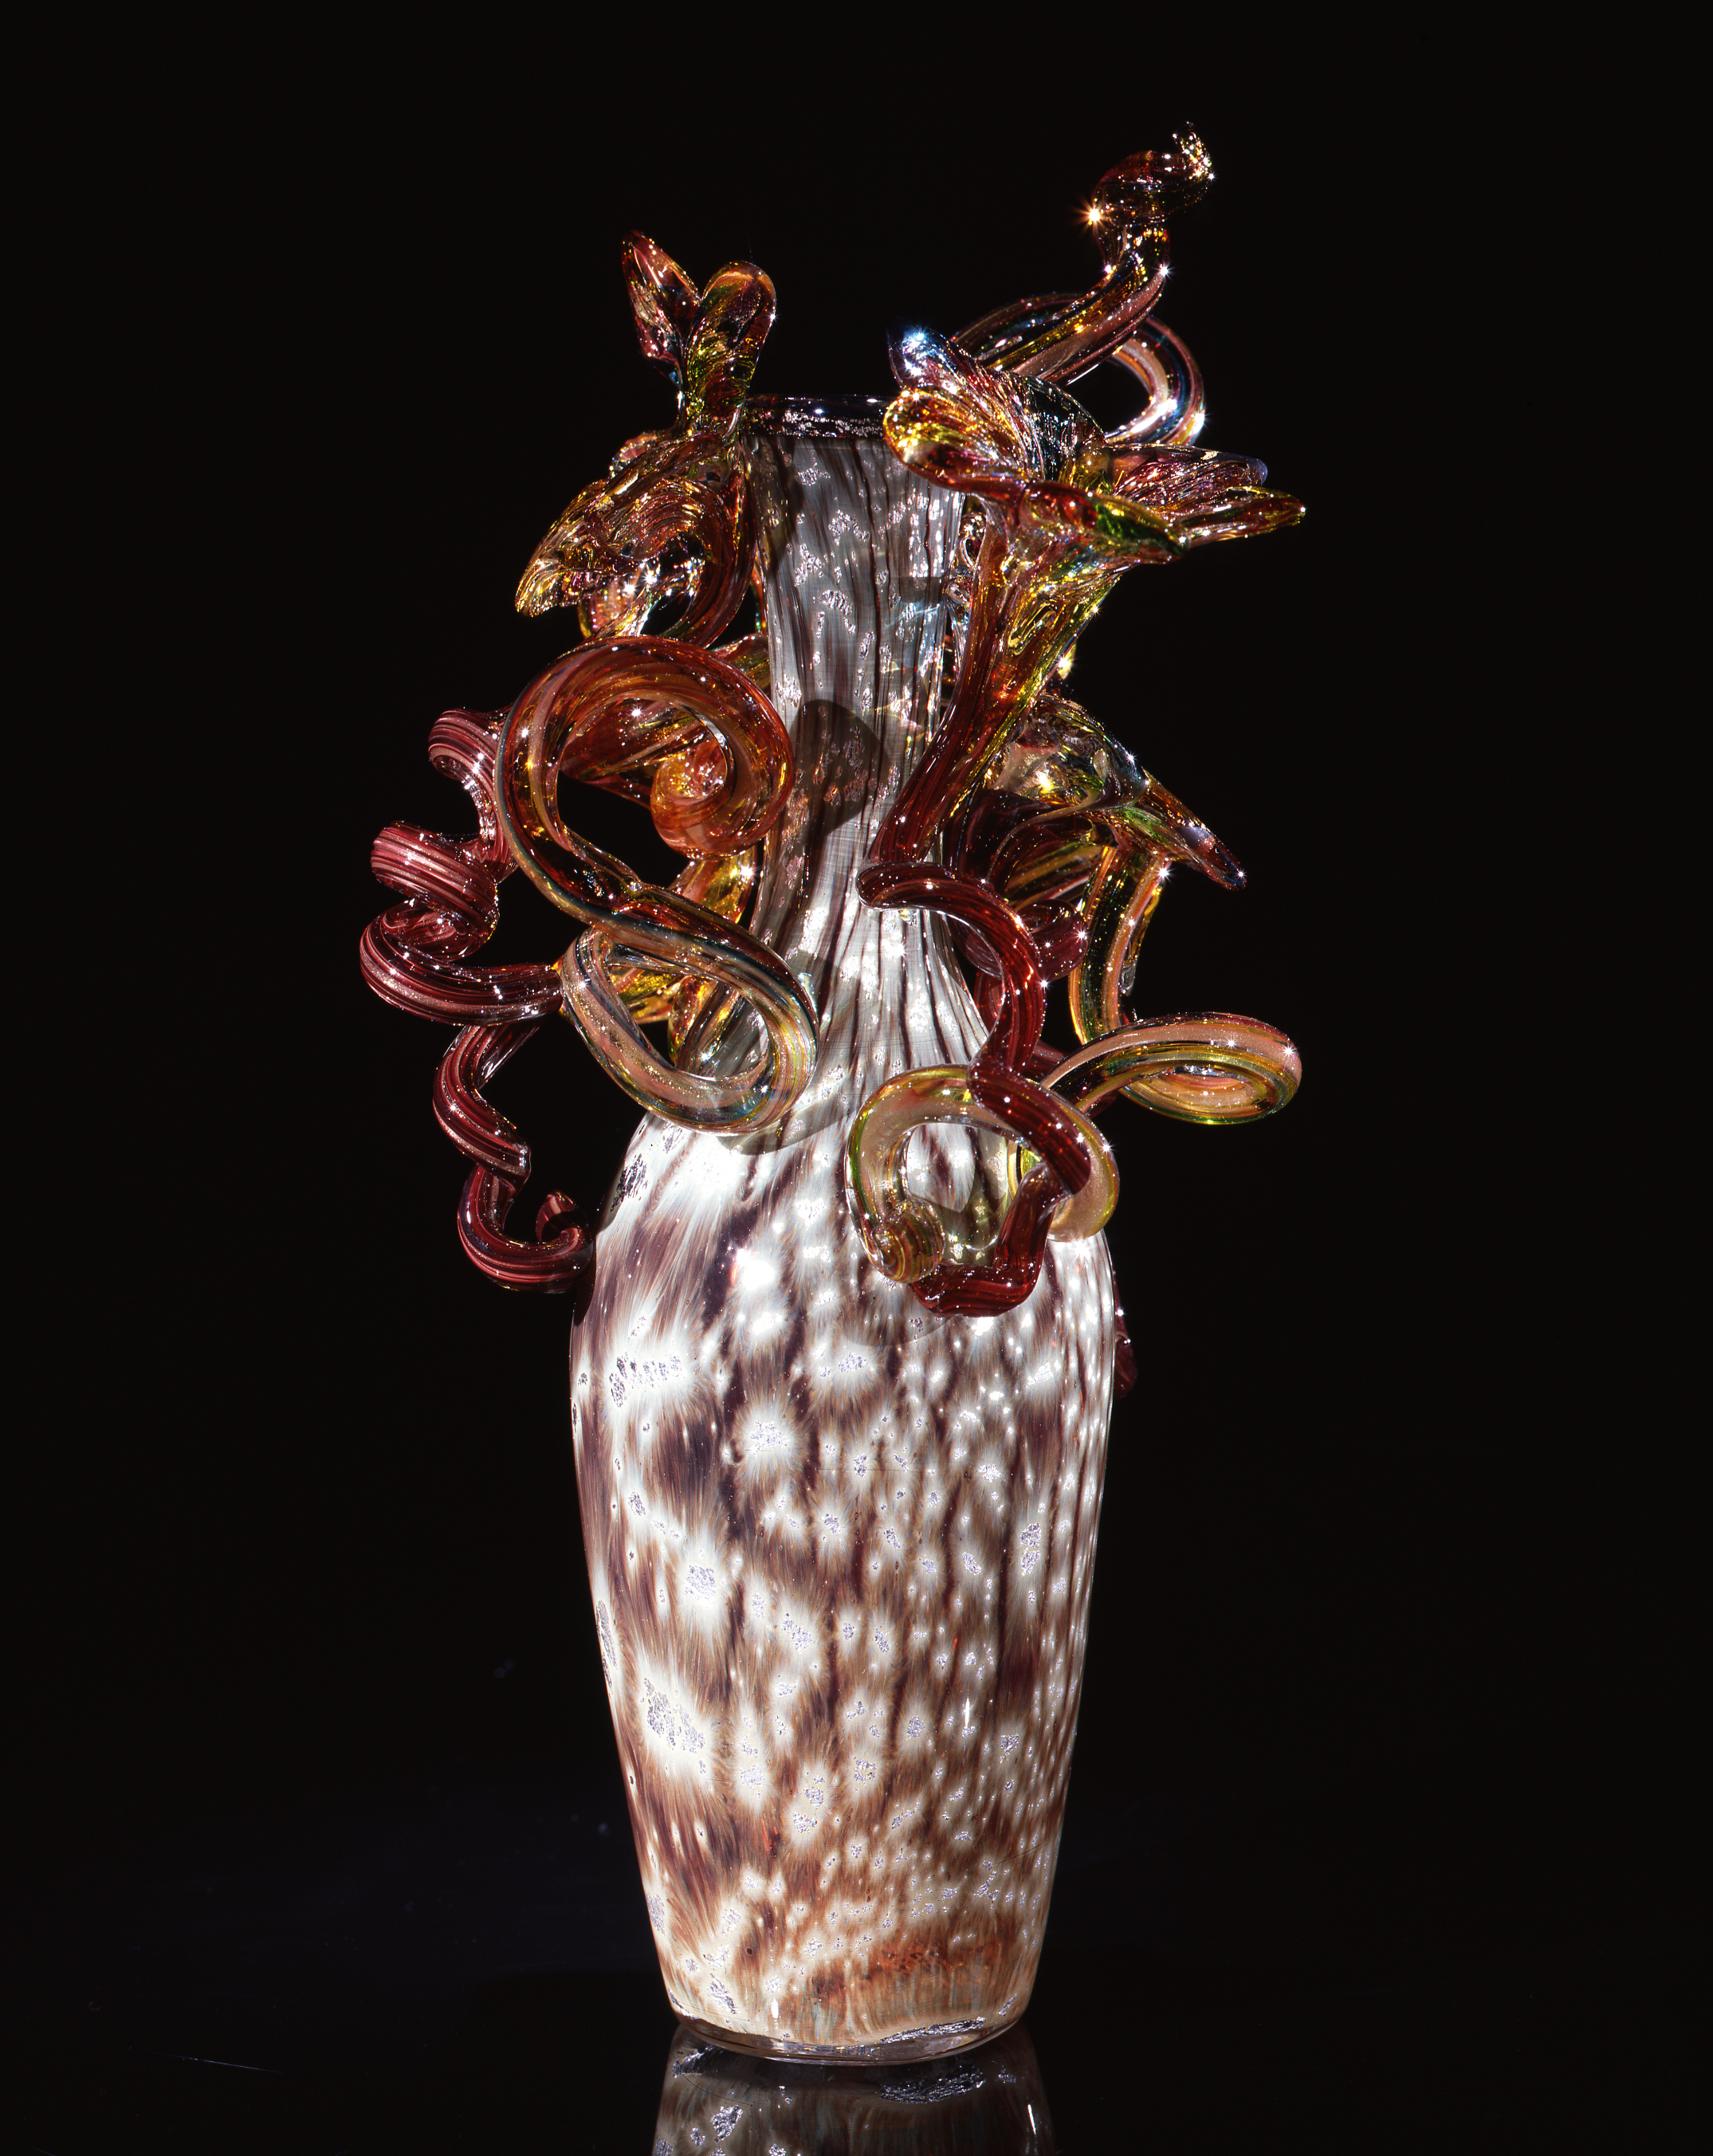 Dale Chihuly,  Alabaster and Umber Piccolo Venetian with Coils and Lilies  (1993, glass, 11 x 5 x 5 inches)